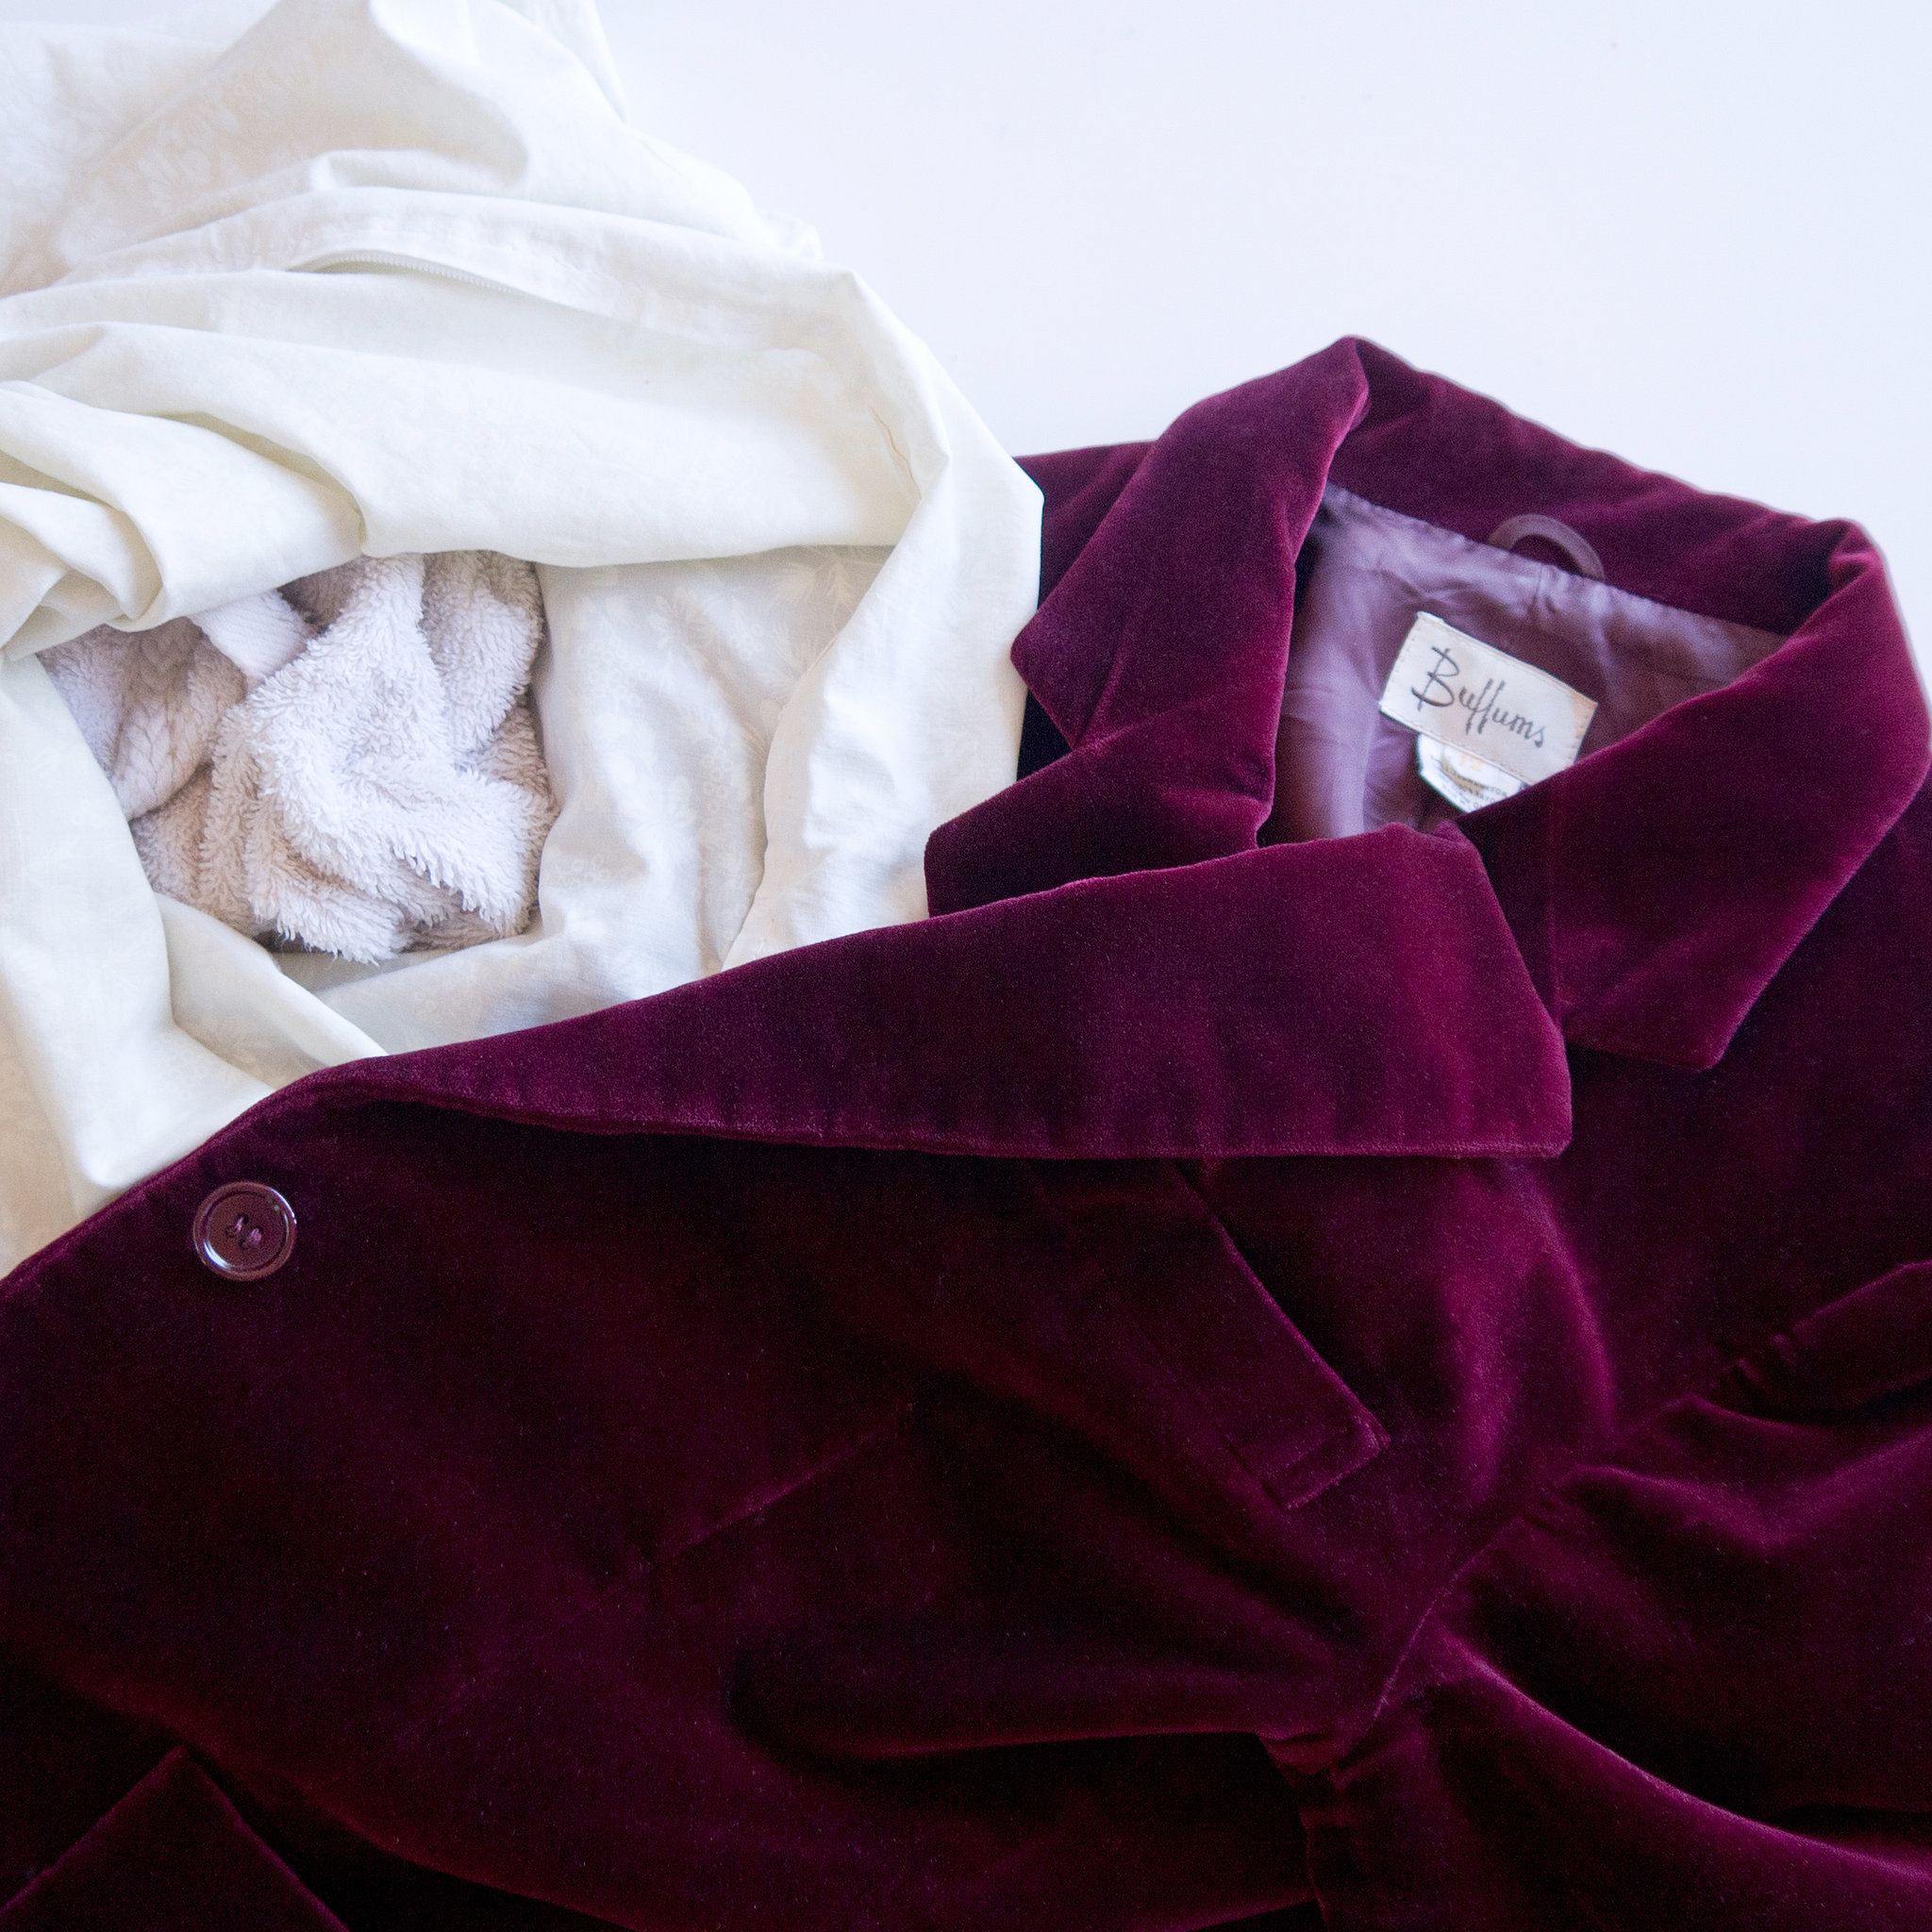 f4e3ac8fc92bae94 1230706.xxxlarge 2x - How to Save On Dry Cleaning in Singapore